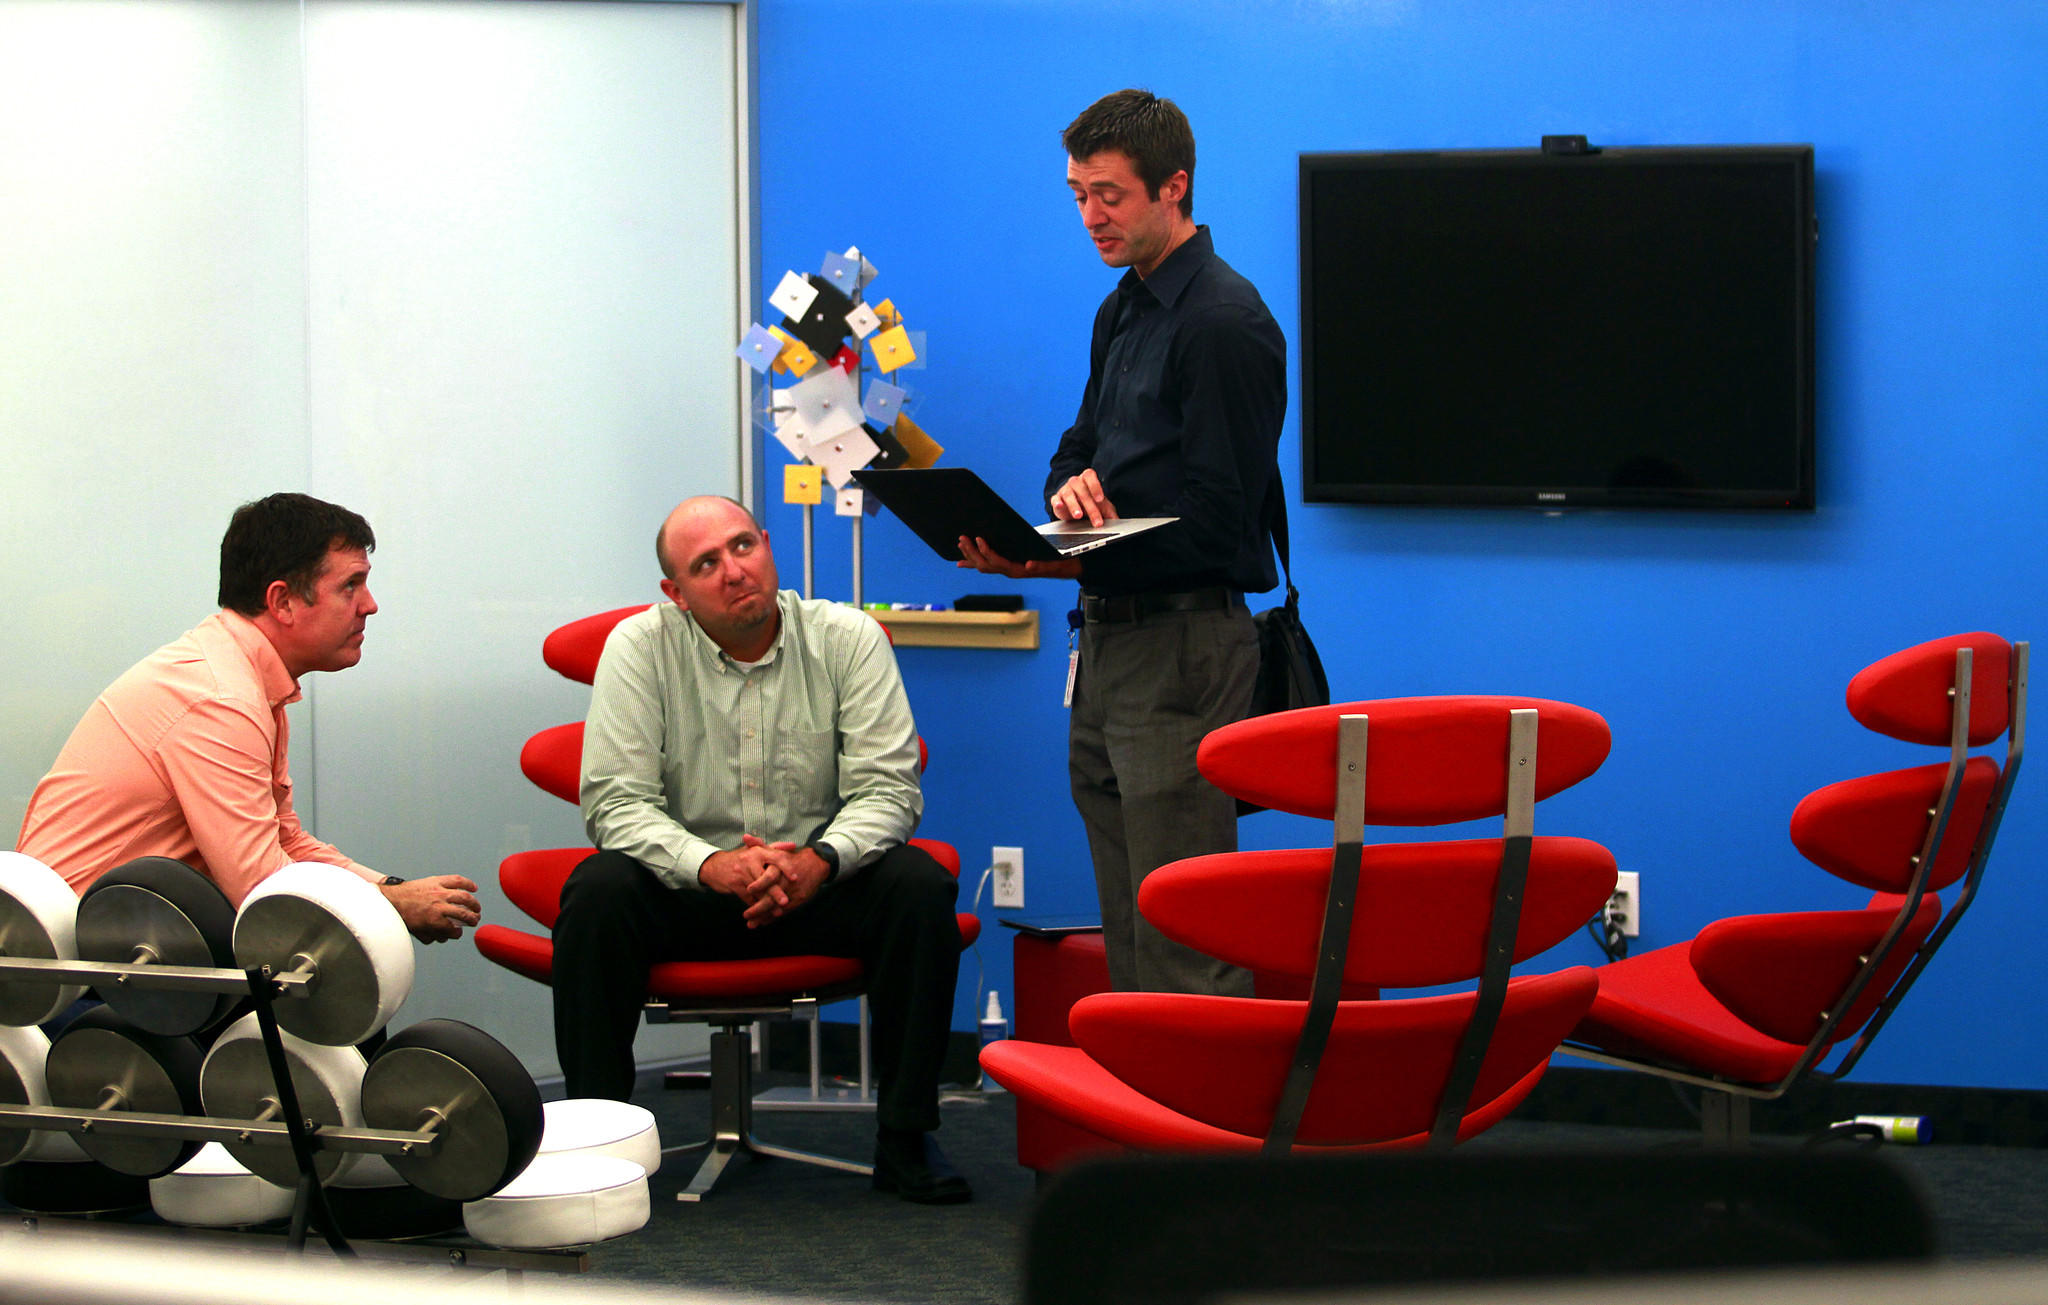 Michael McKiernan, vice president of Business Technology Solutions and Trenton Cycholl talk with Sebastian Barnes in the Pop Art front porch of Citrix's Ft Lauderdale office in 2012.